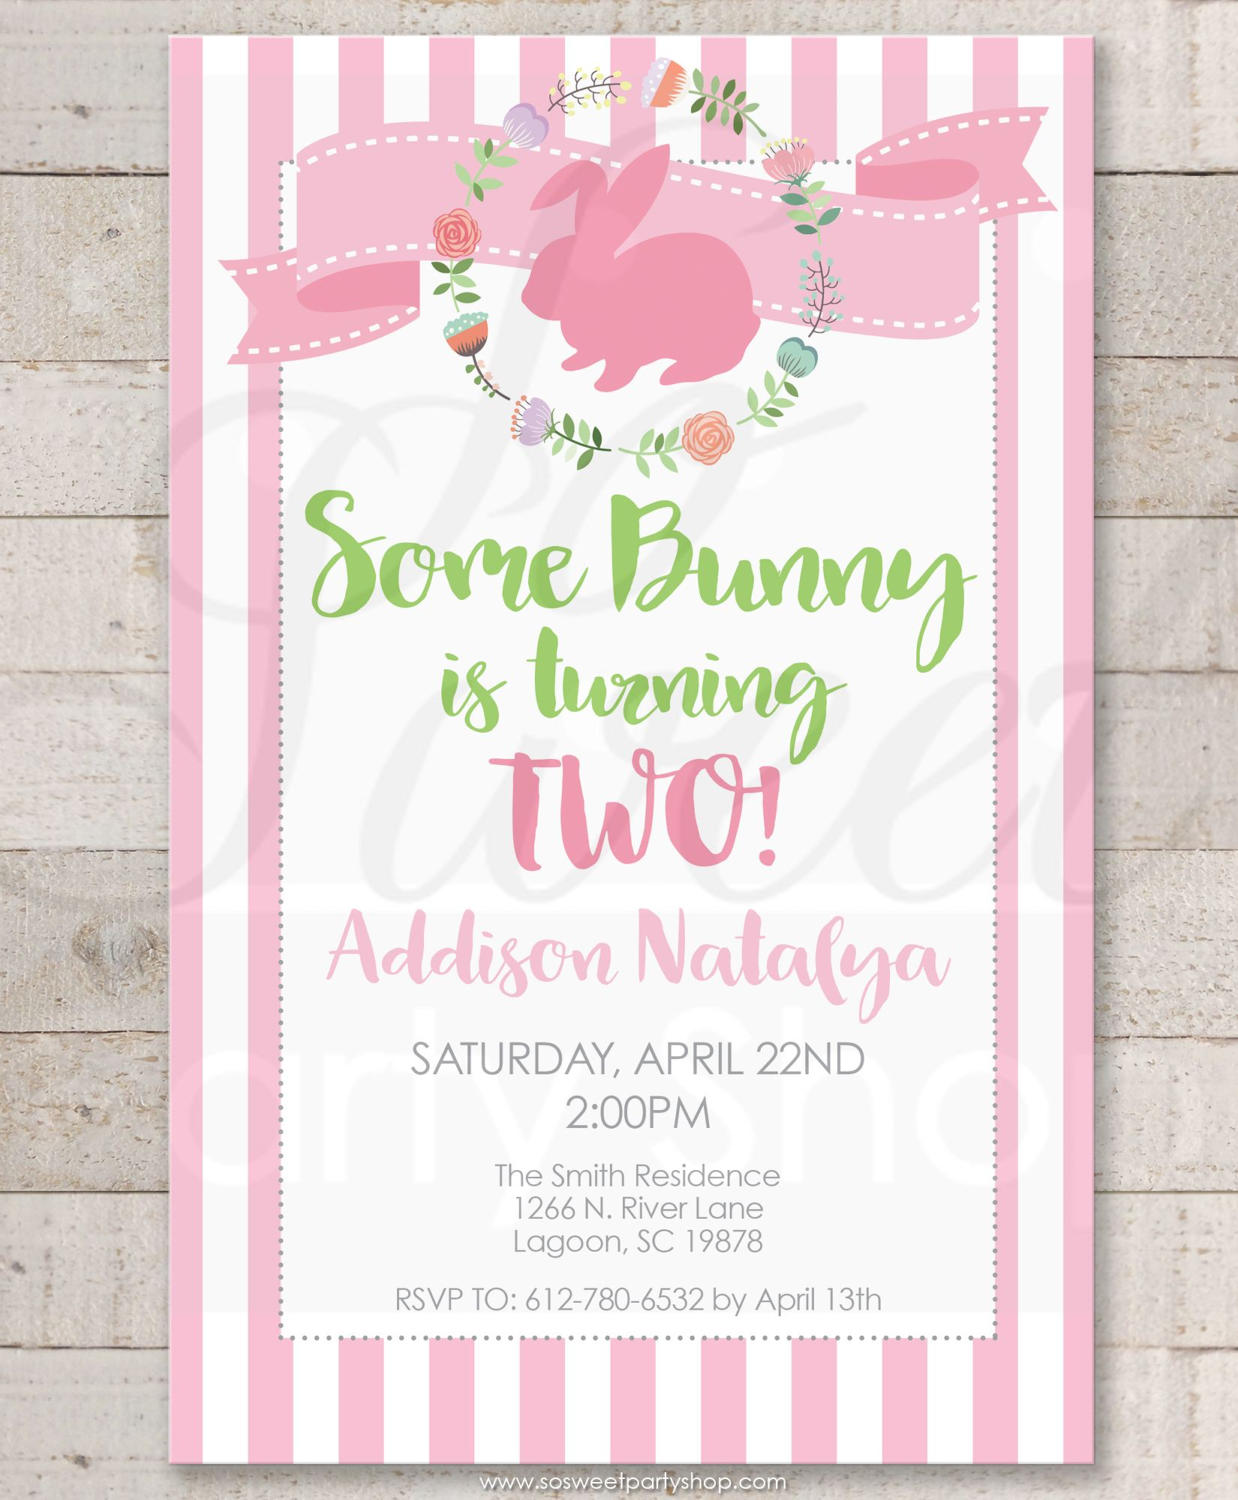 some bunny is one easter birthday invitations 1st birthday party invitations bunny birthday spring birthday invitations set of 10